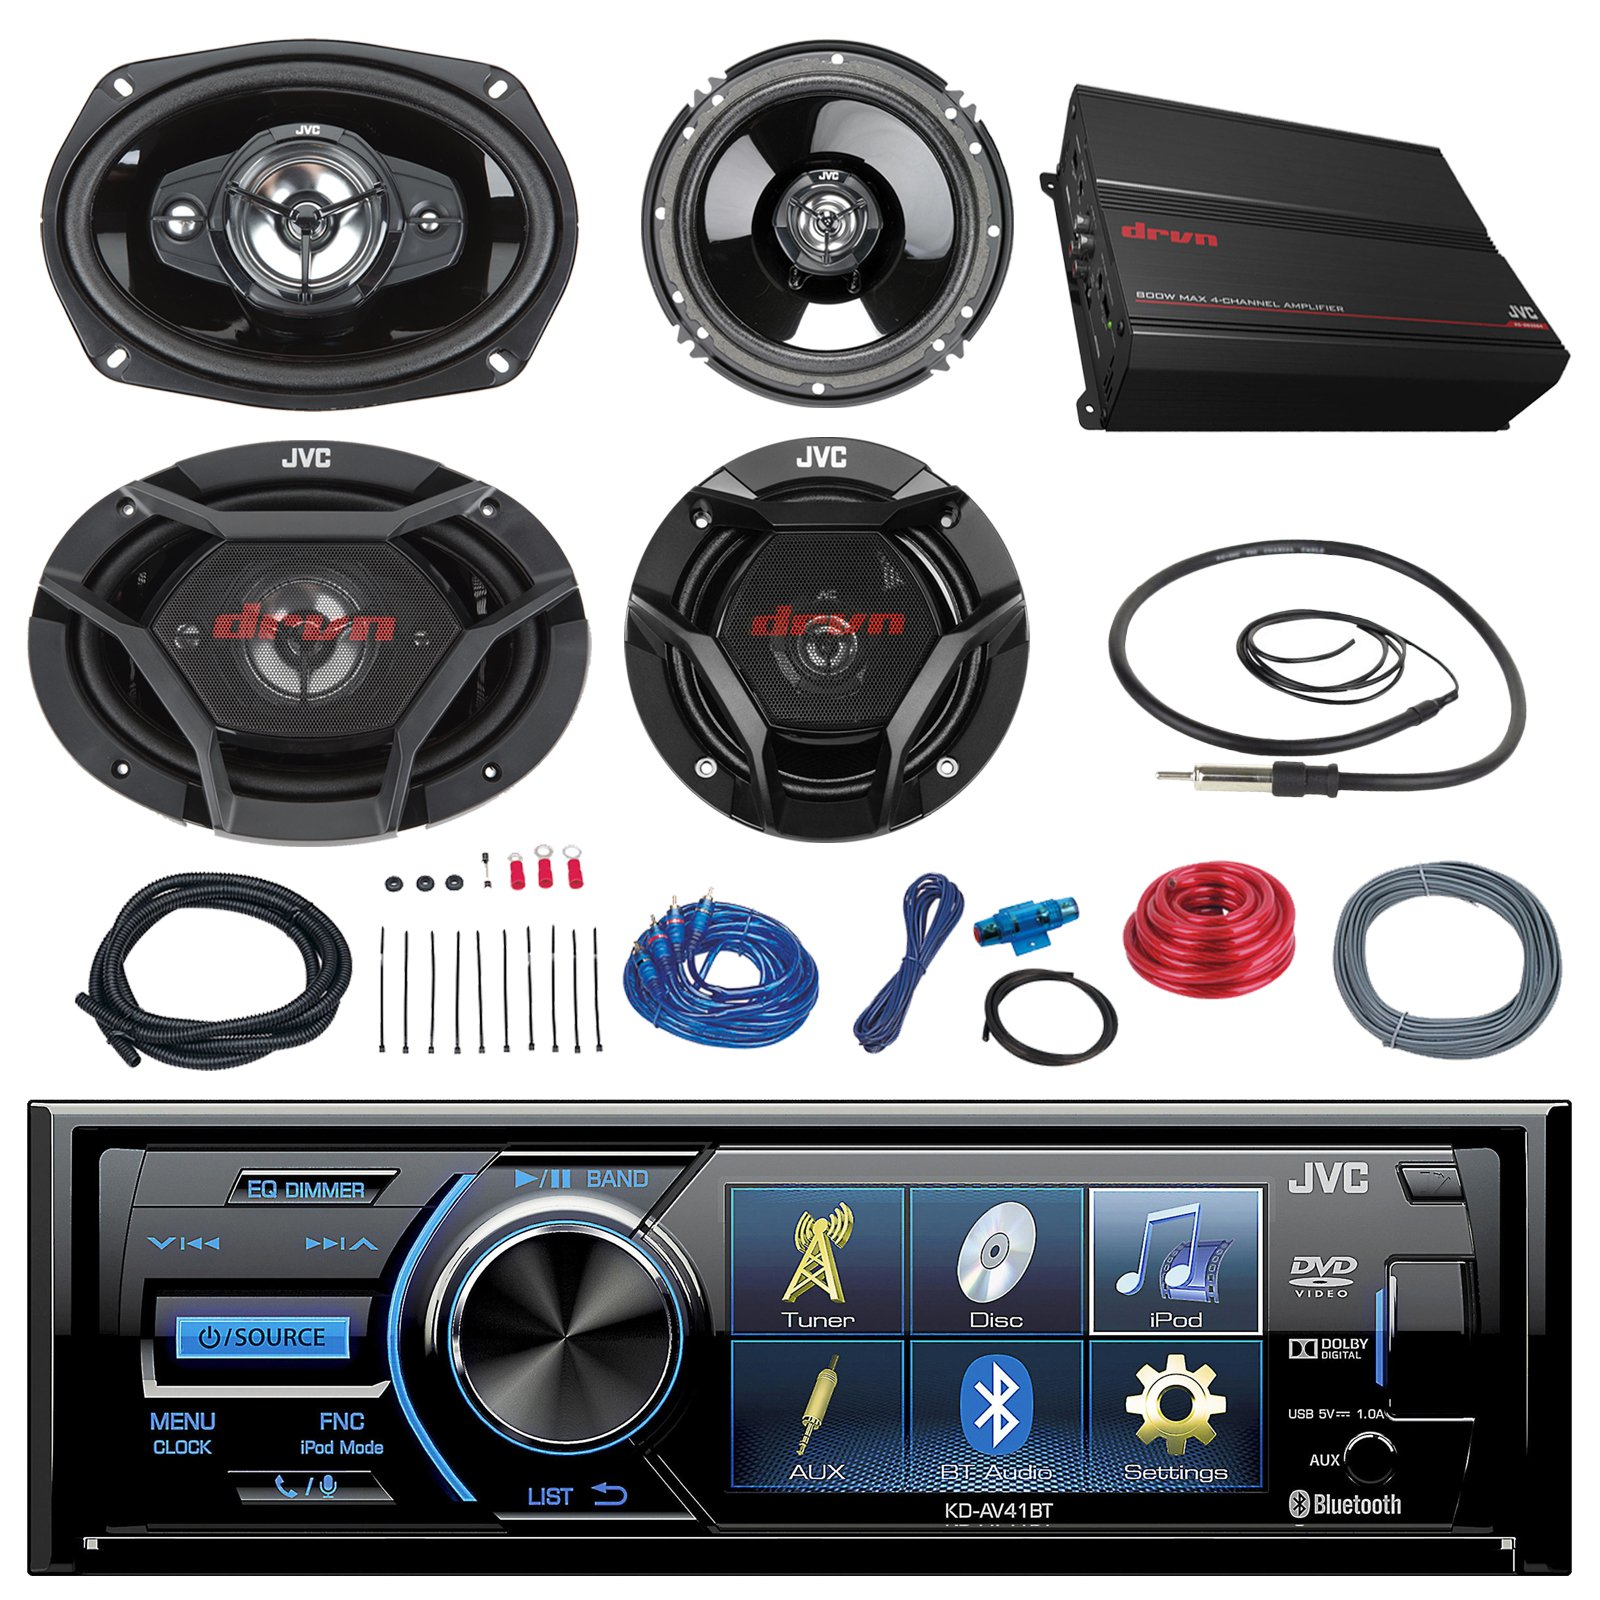 JVC KD-AV41BT 3'' Car DVD Bluetooth Stereo Receiver Bundle Combo With 2x Dual 6.5'' 2-Way And 2x 6x9'' Inch 4-Way Coaxial Speakers + 1000-Watt 4-Channel Amplifier With Install Kit + Enrock AM/FM Antenna